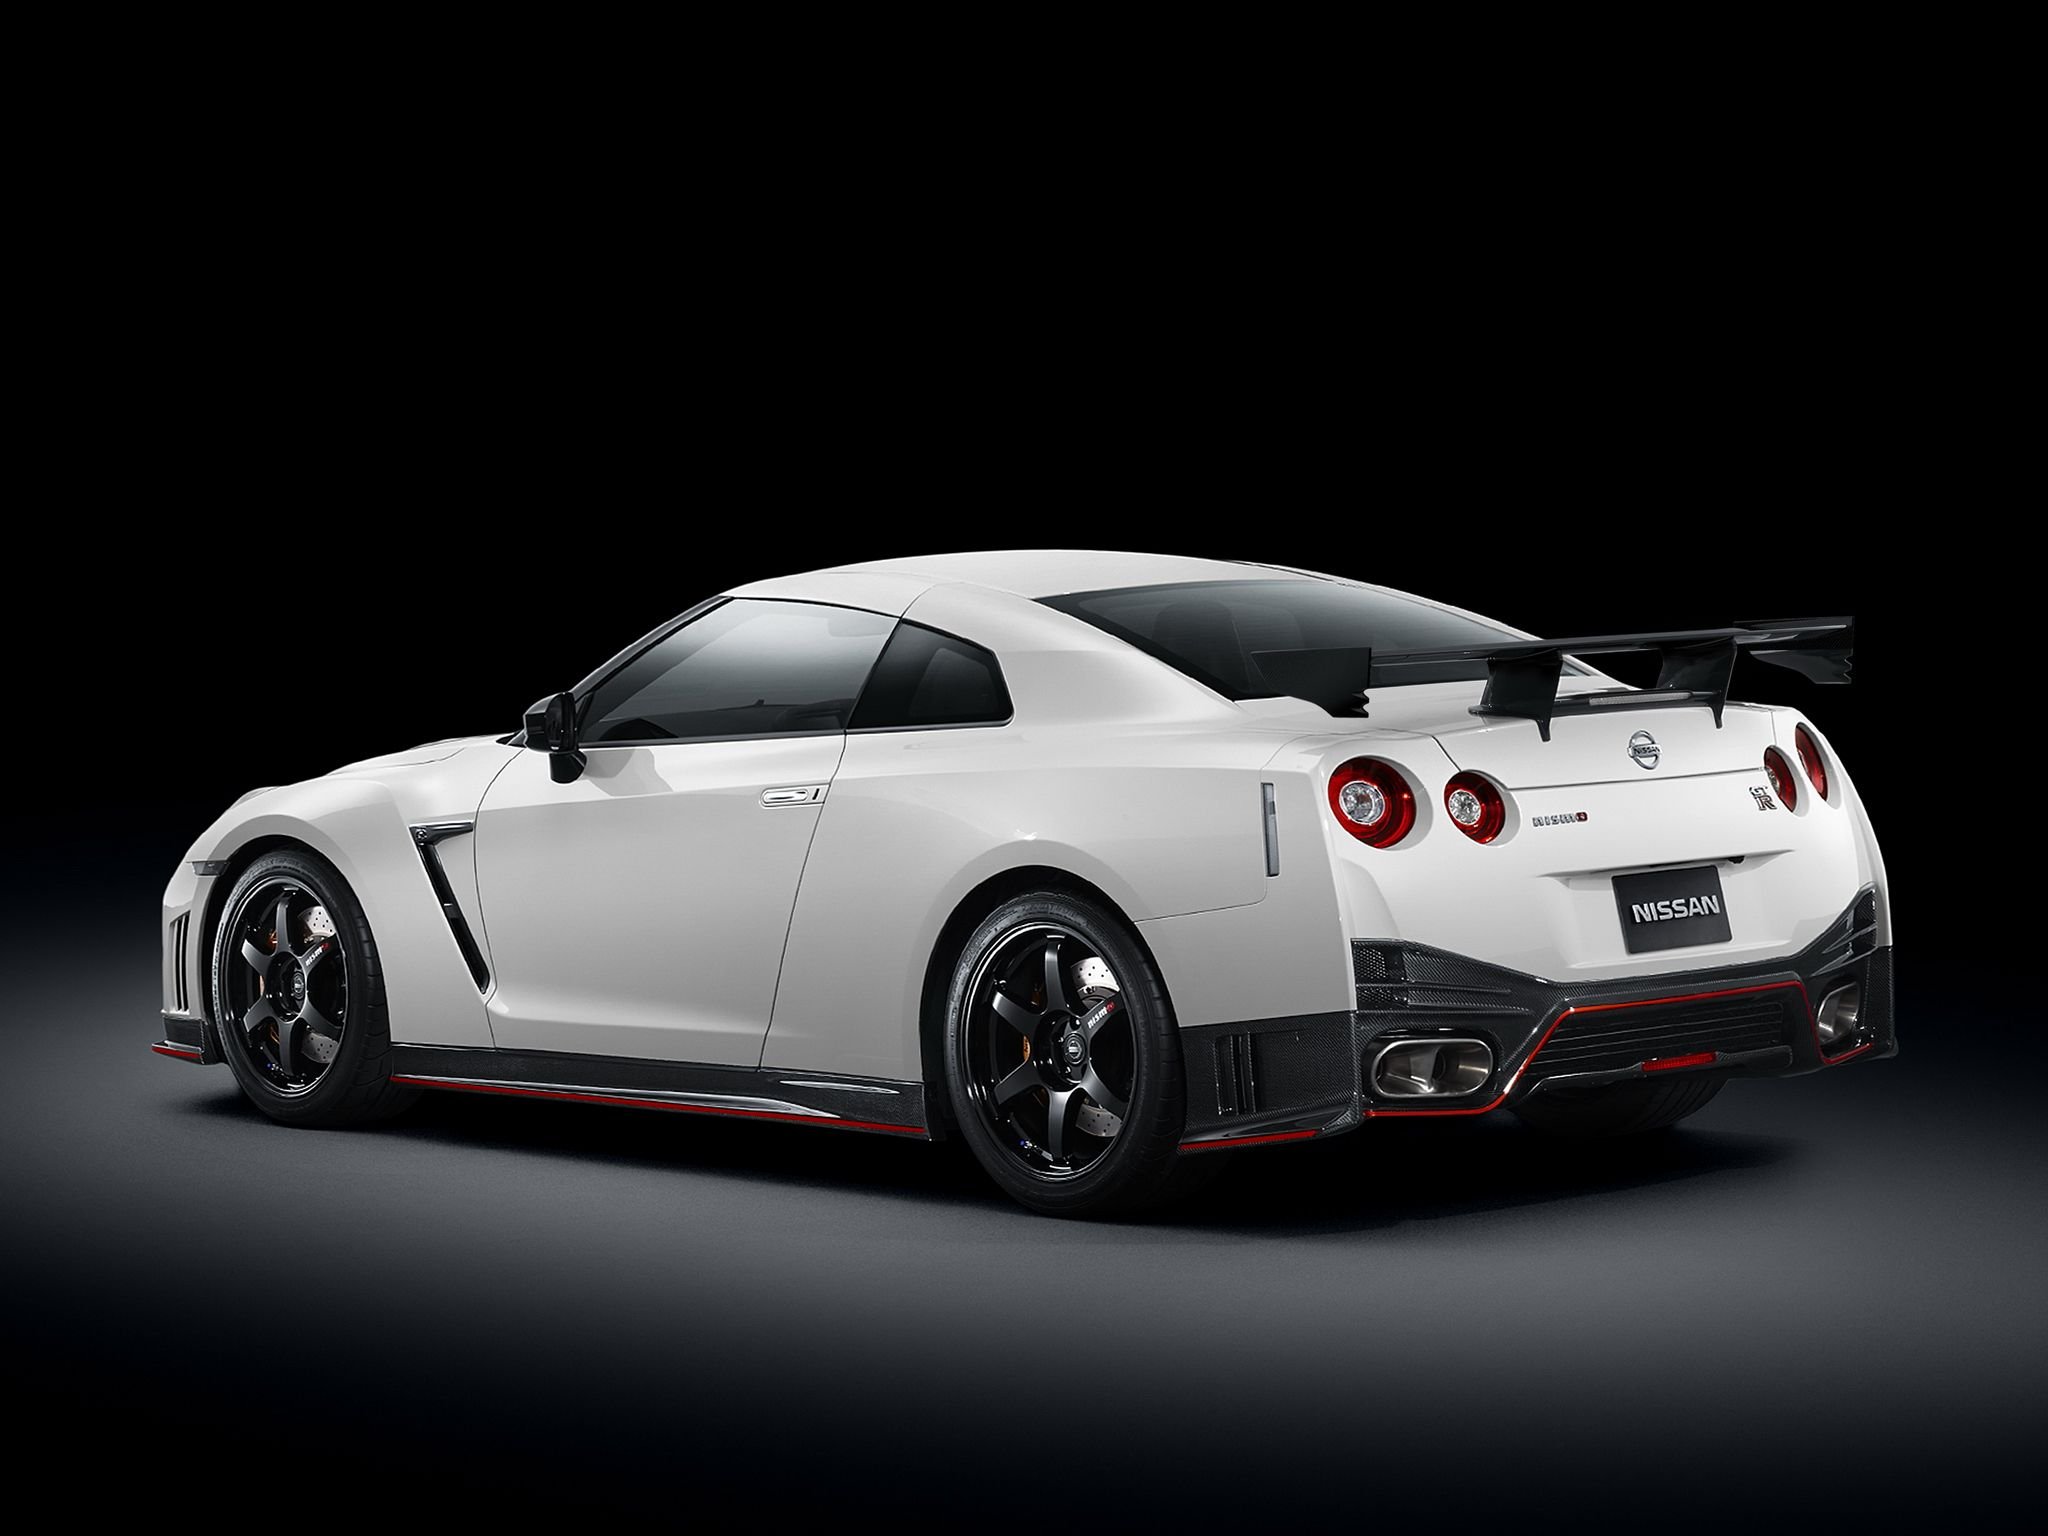 2014 nismo nissan skyline gt r r35 carros pinterest skyline r35 nissan skyline and nissan. Black Bedroom Furniture Sets. Home Design Ideas